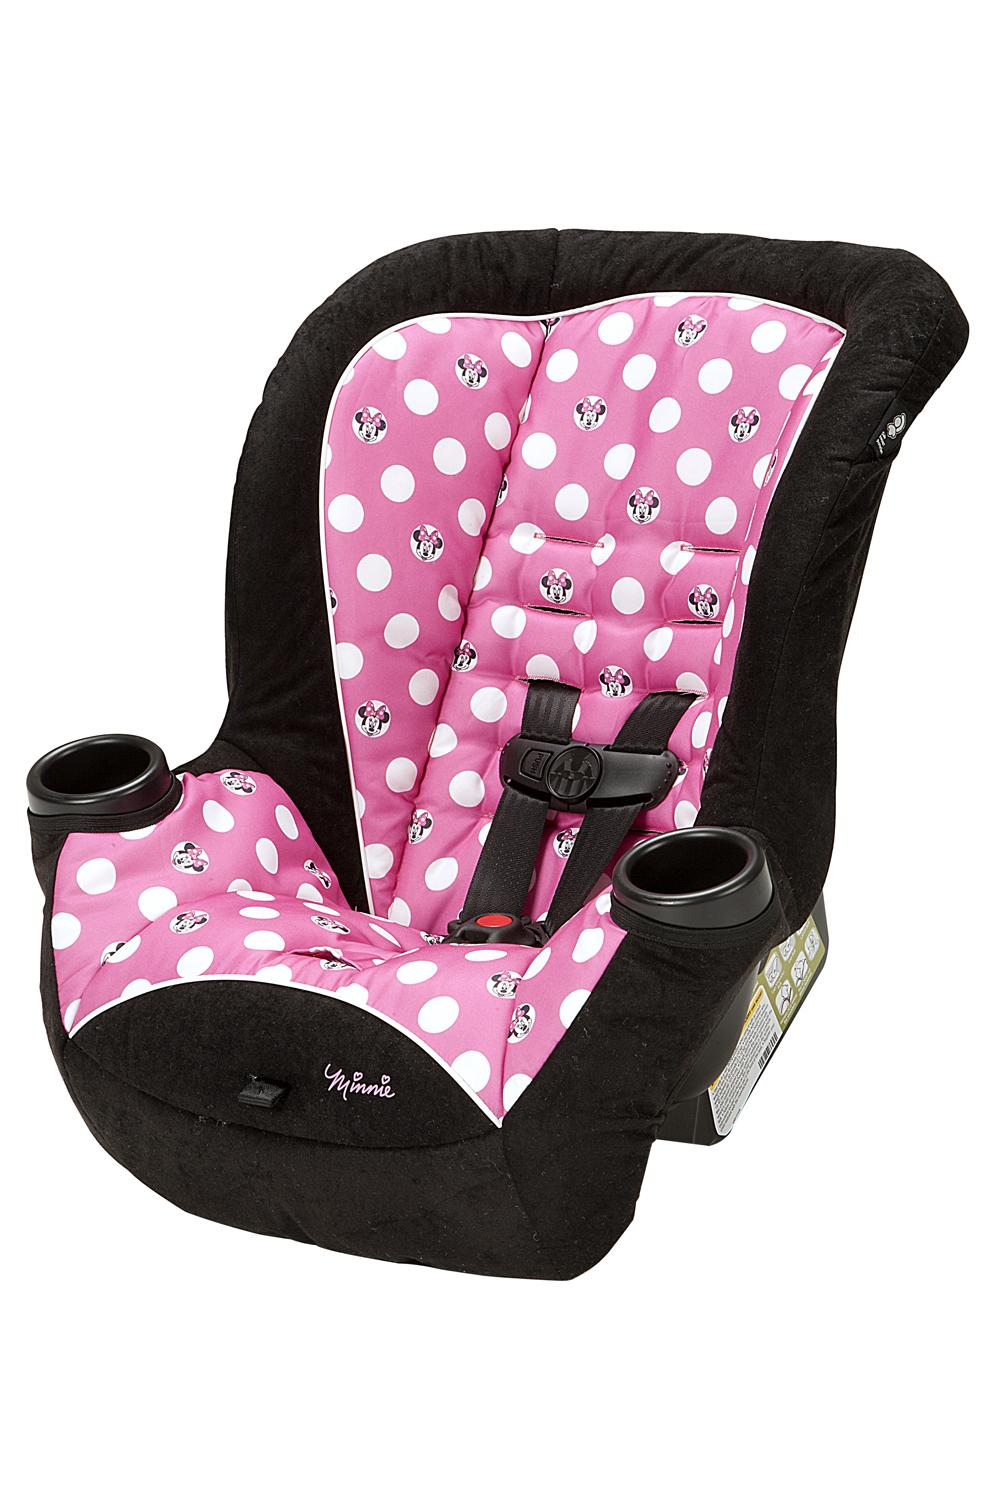 Infant Car Seat Or Convertible Cosco Apt Convertible Car Seat Minnie Mouse